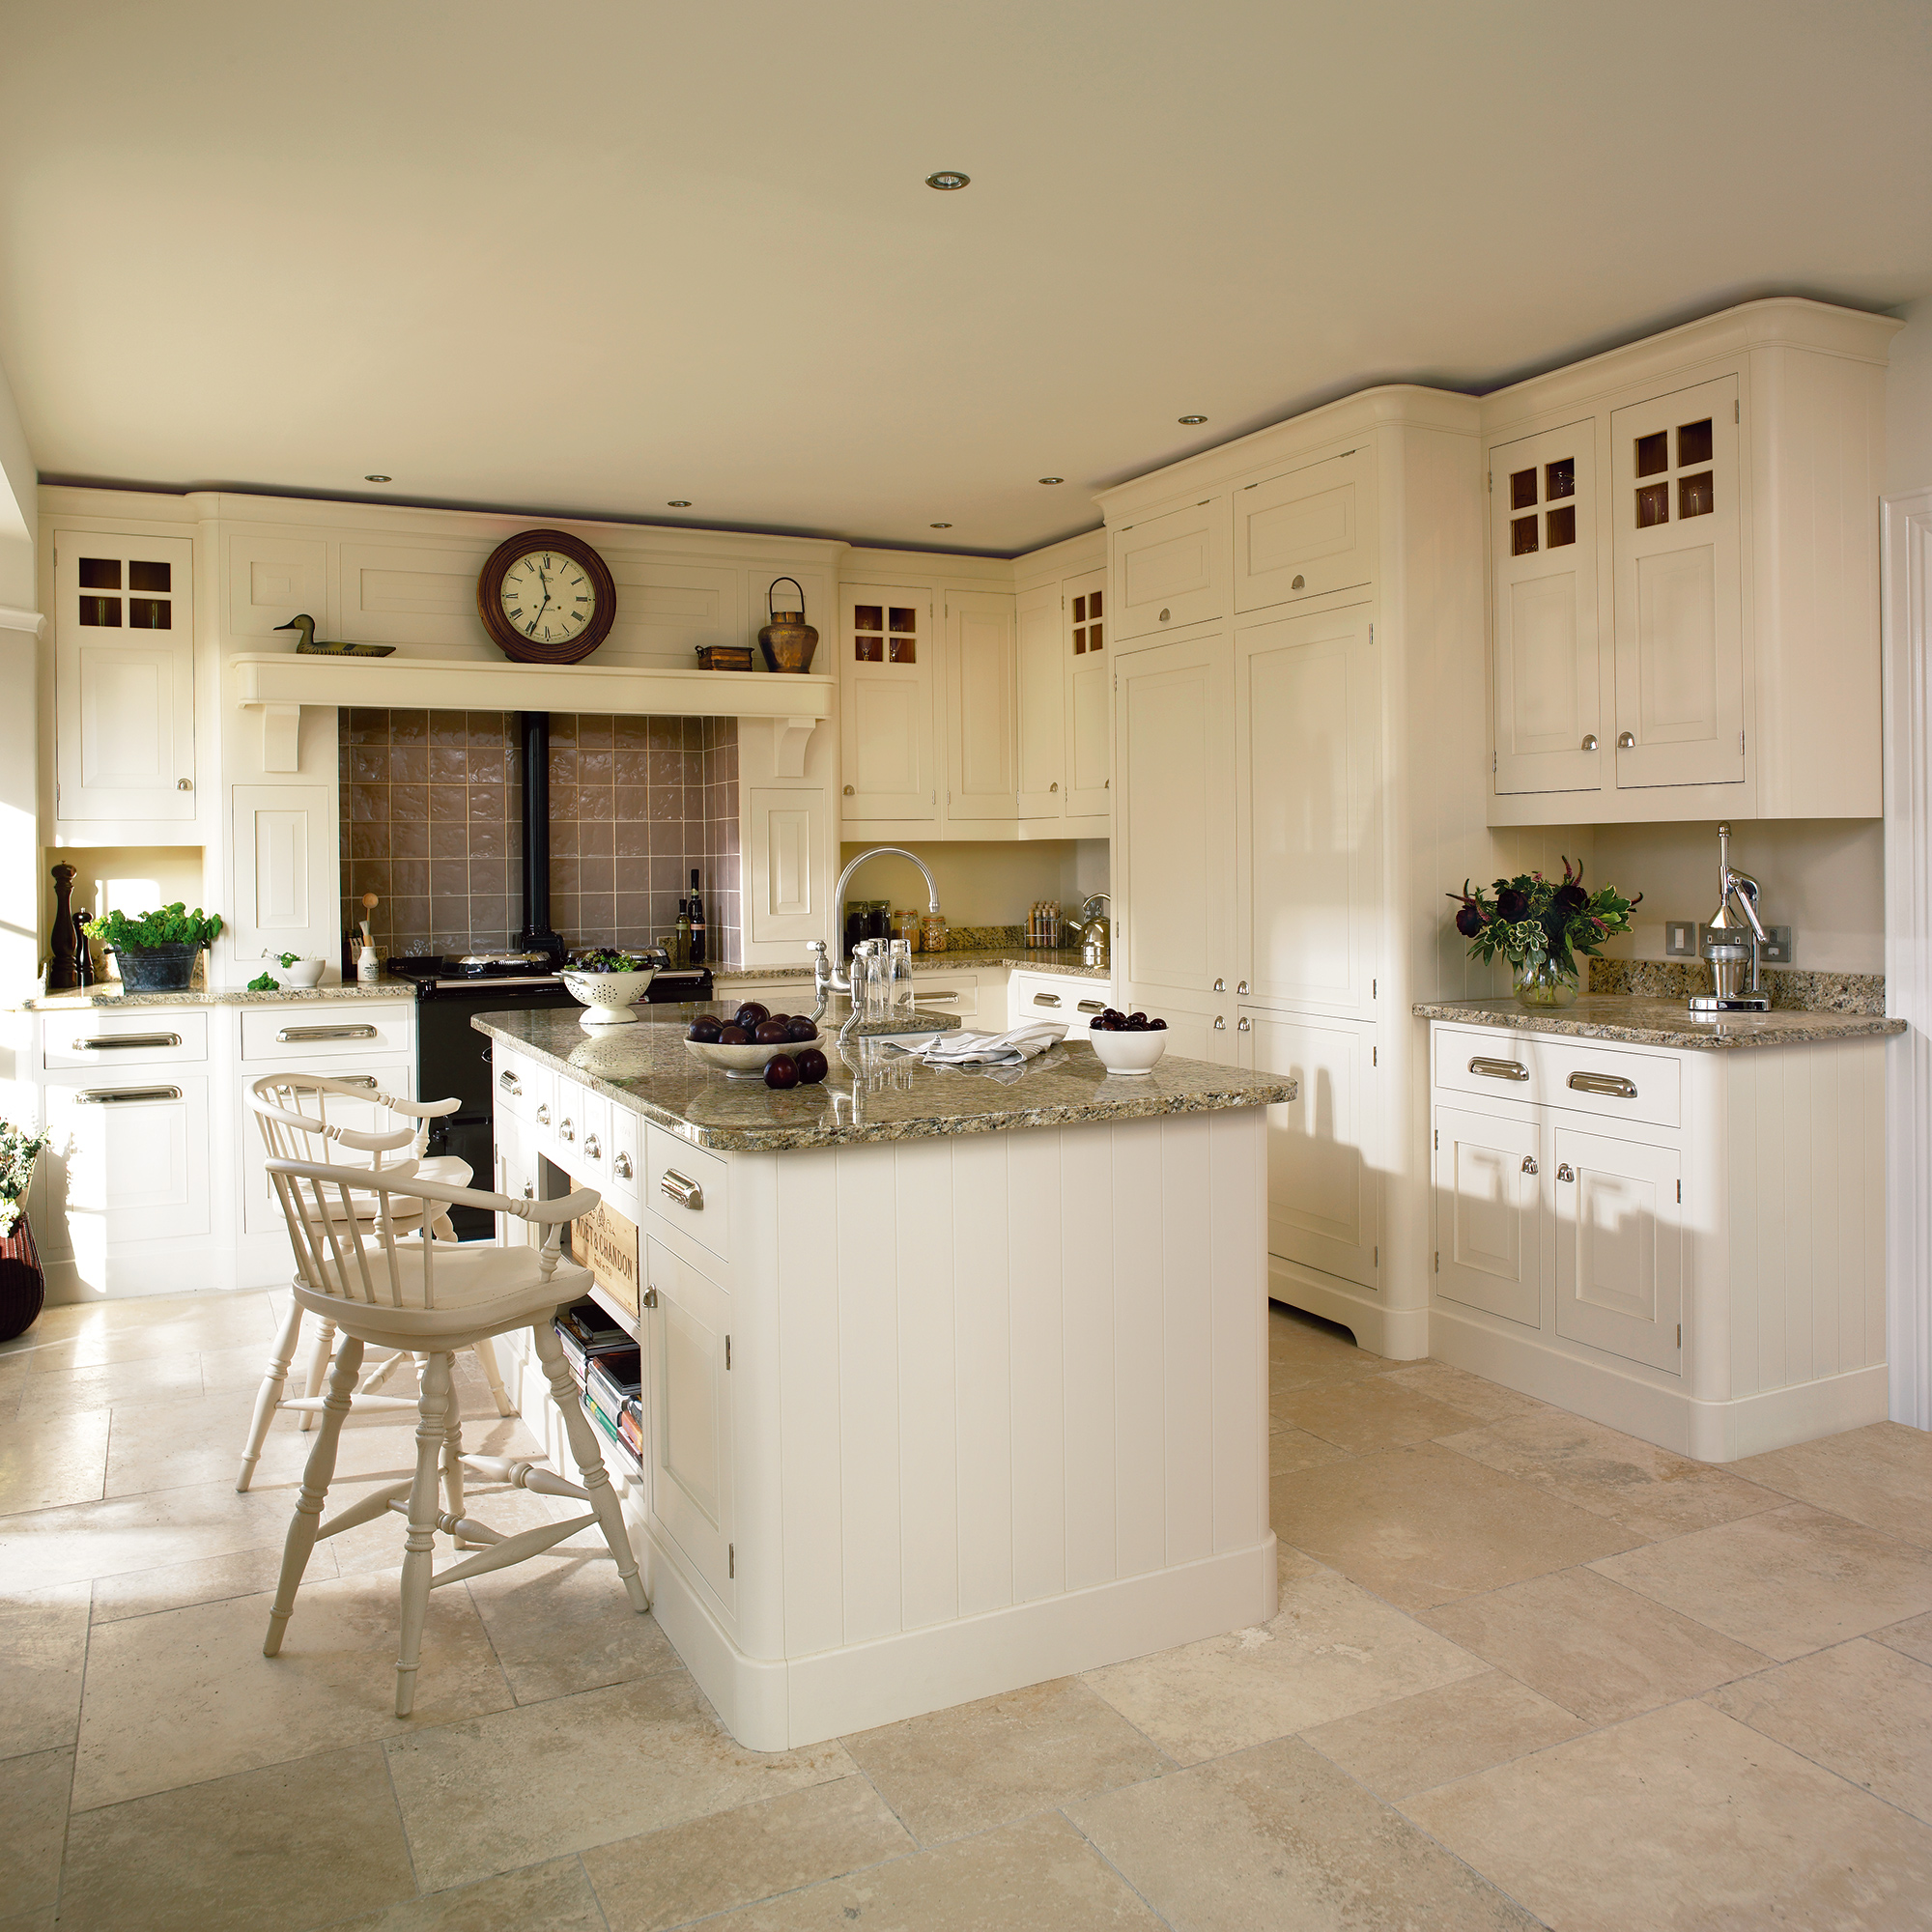 Mark wilkinson furniture collection english classic kitchen 21